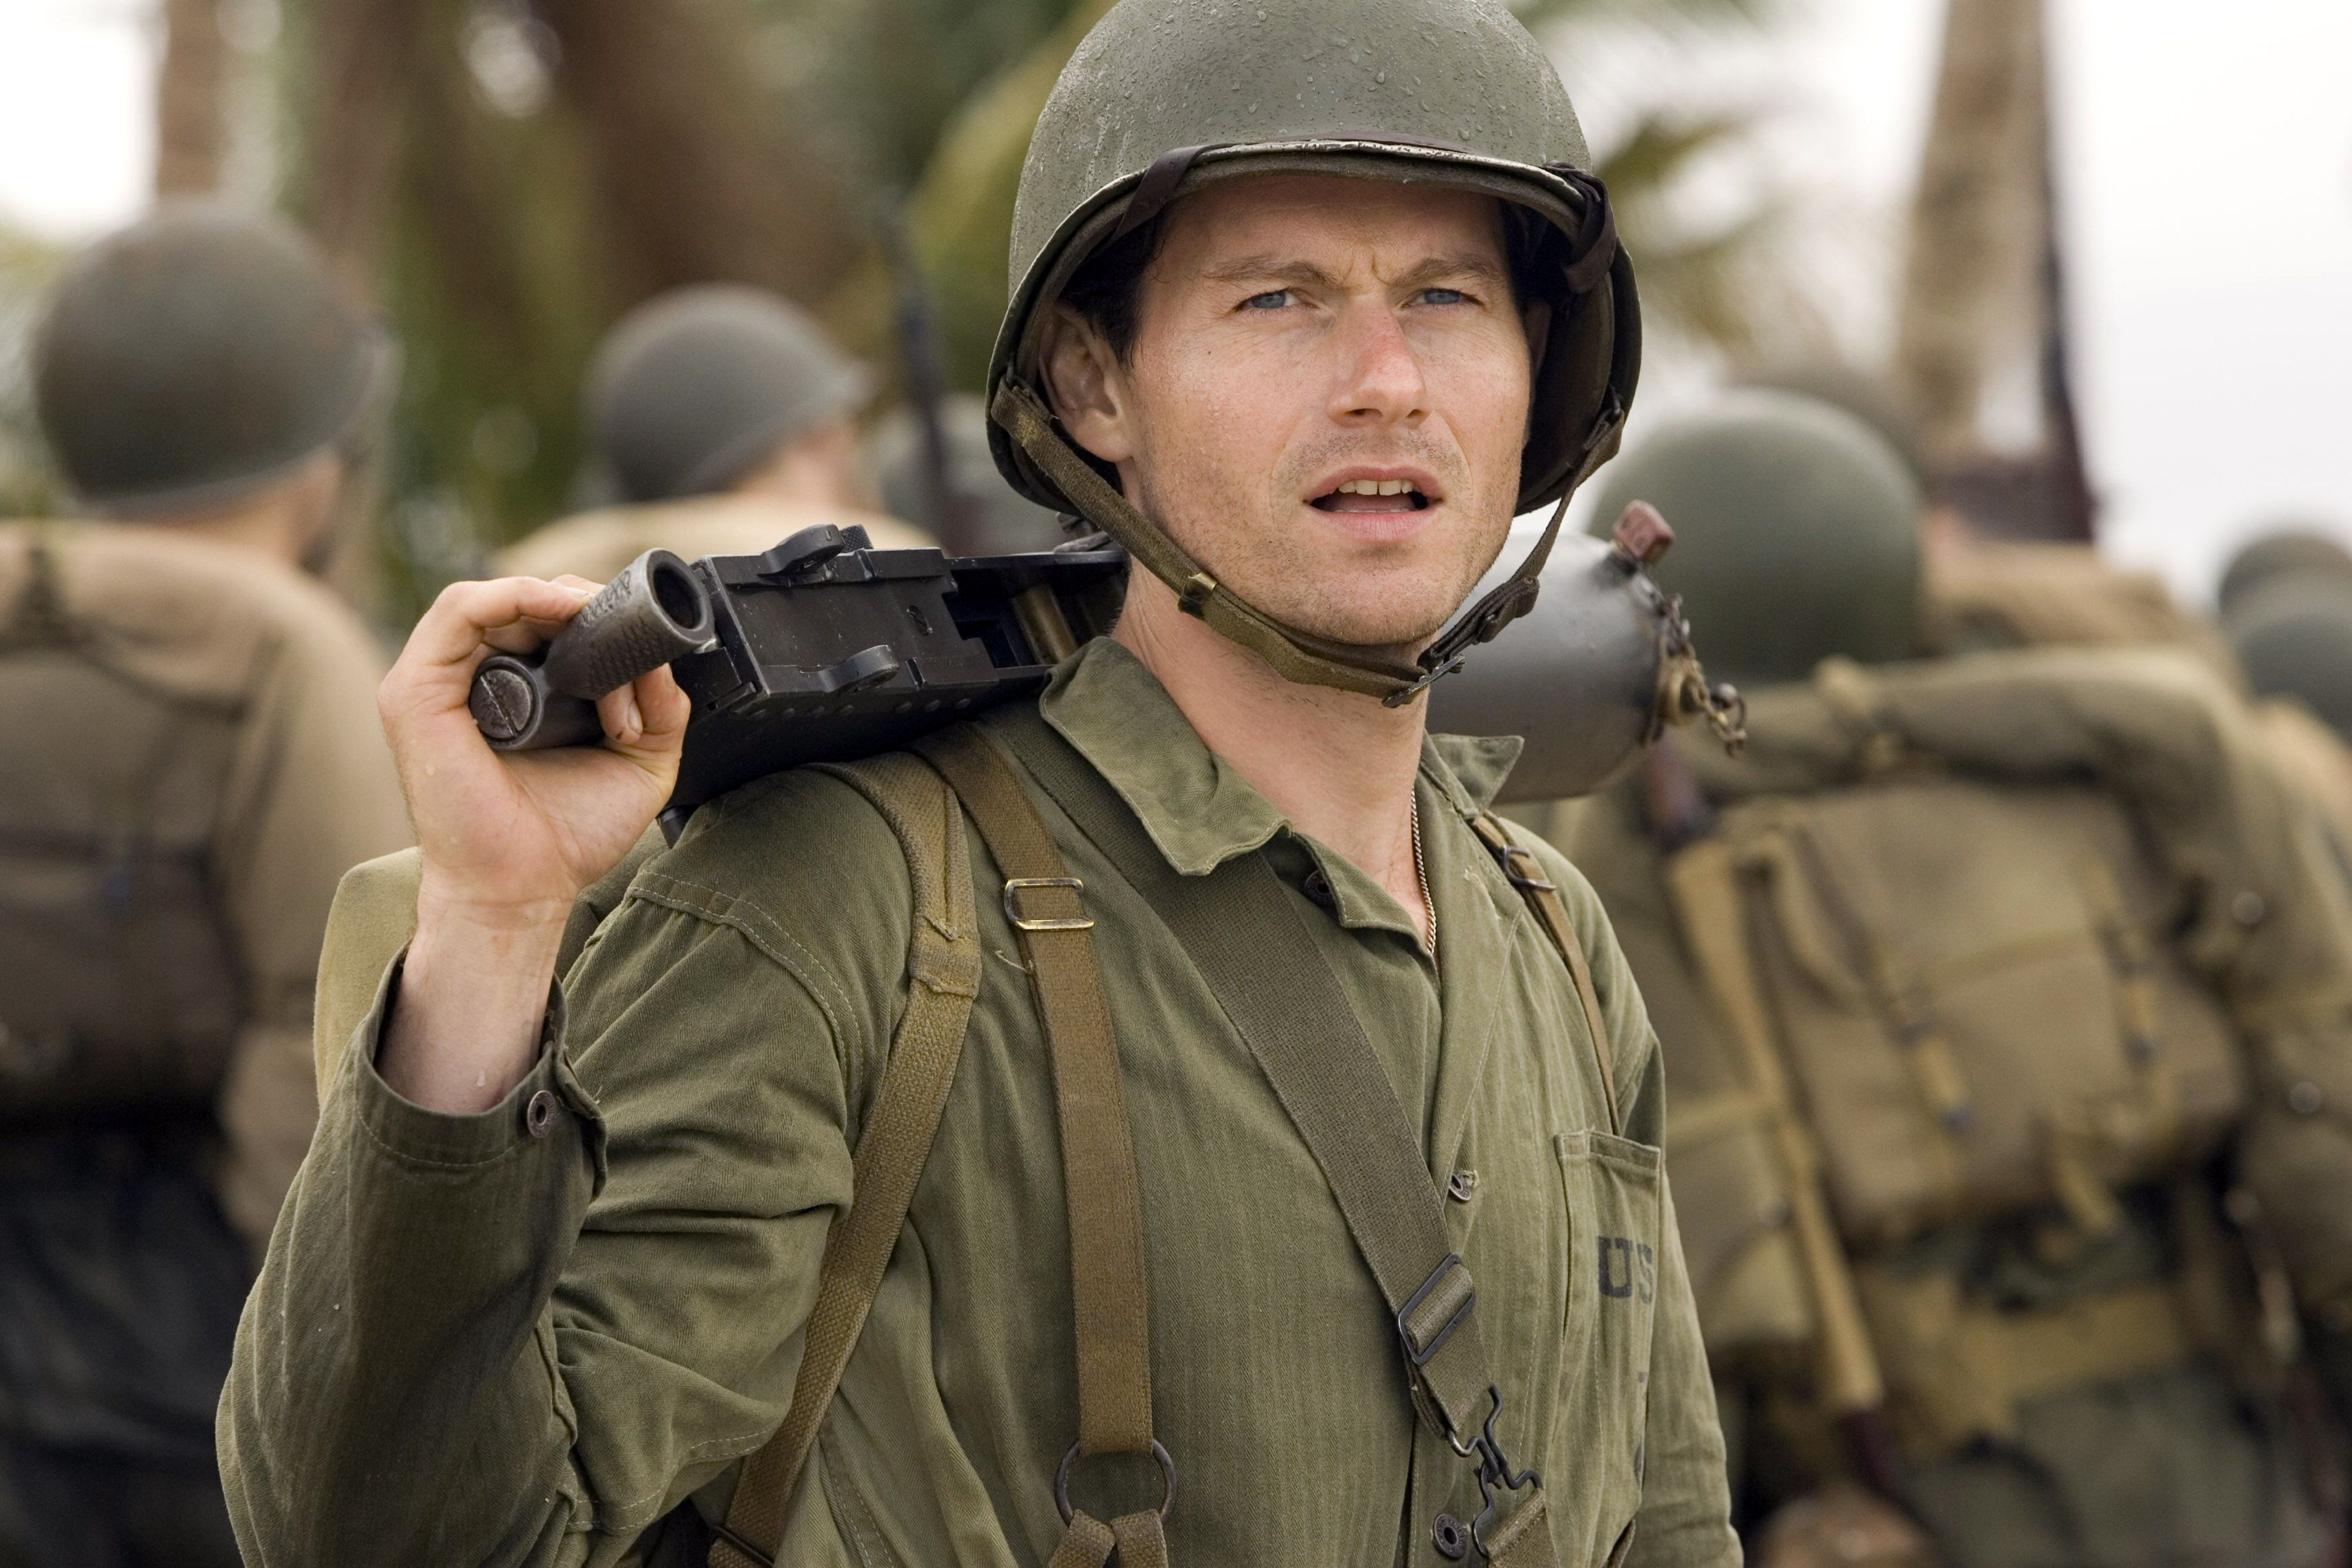 james badge dale the pacific - Google Search